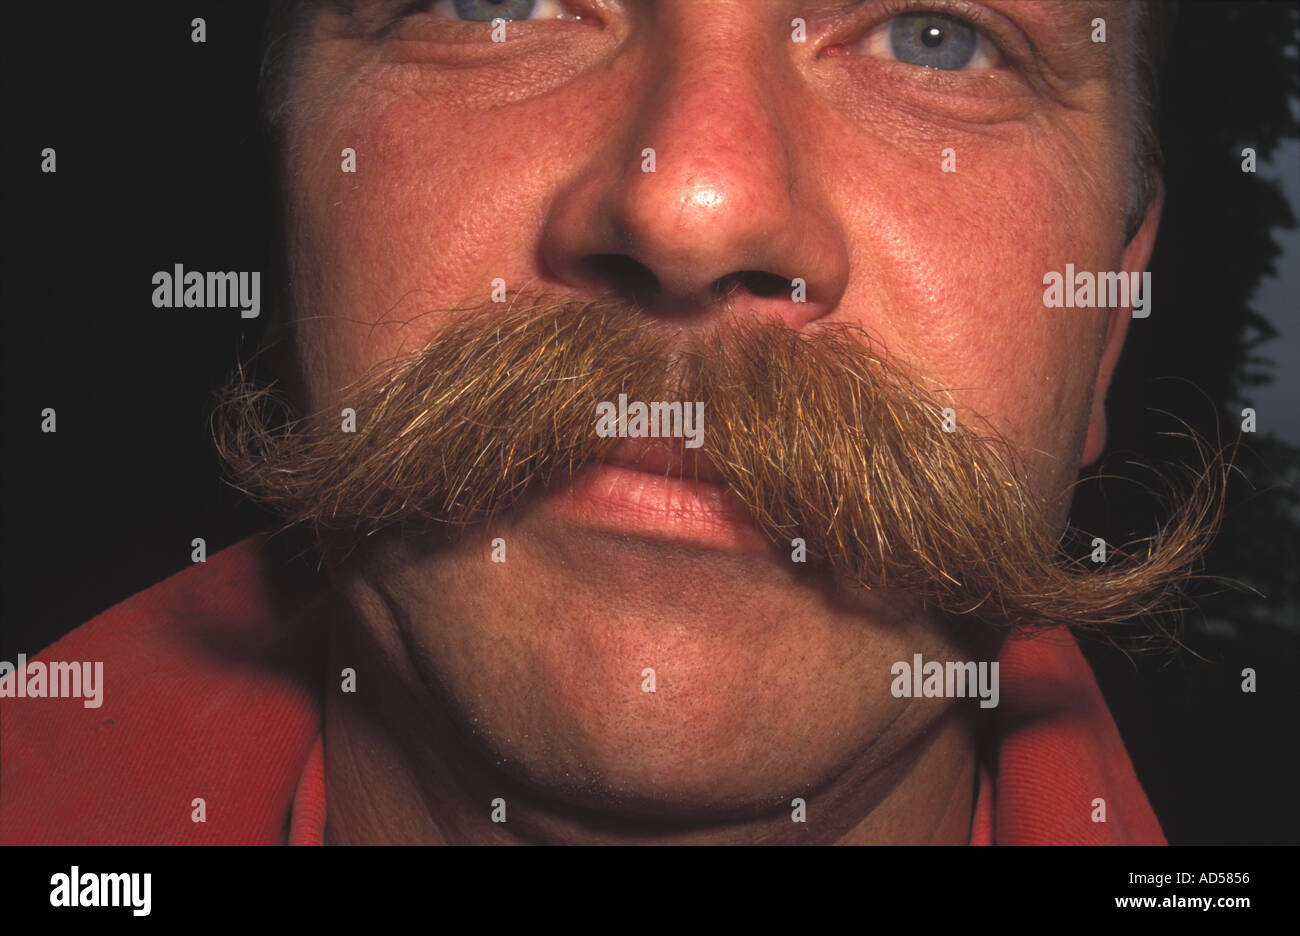 Man with mustache / mousatche - Stock Image